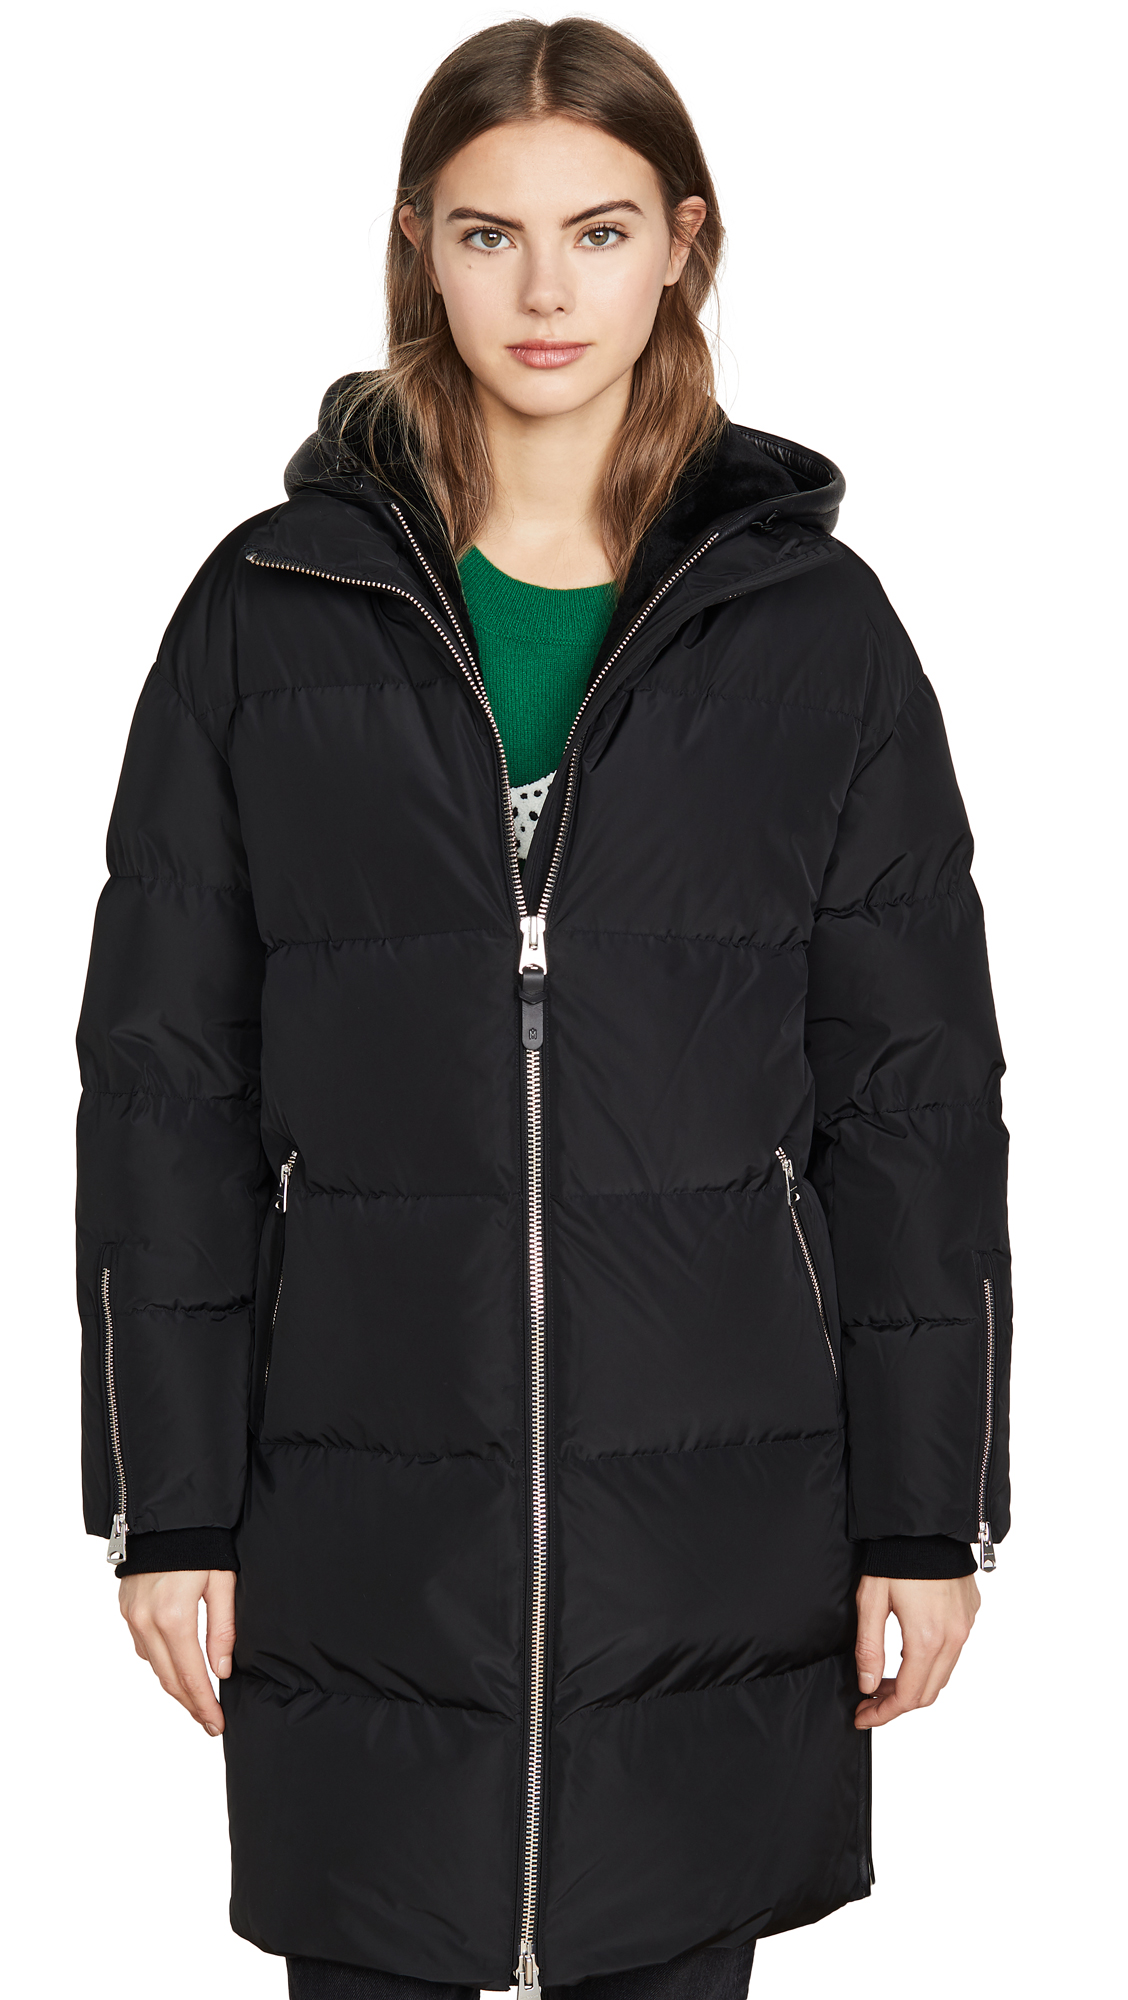 Buy Mackage Raffy Jacket online beautiful Mackage Jackets, Coats, Down Jackets